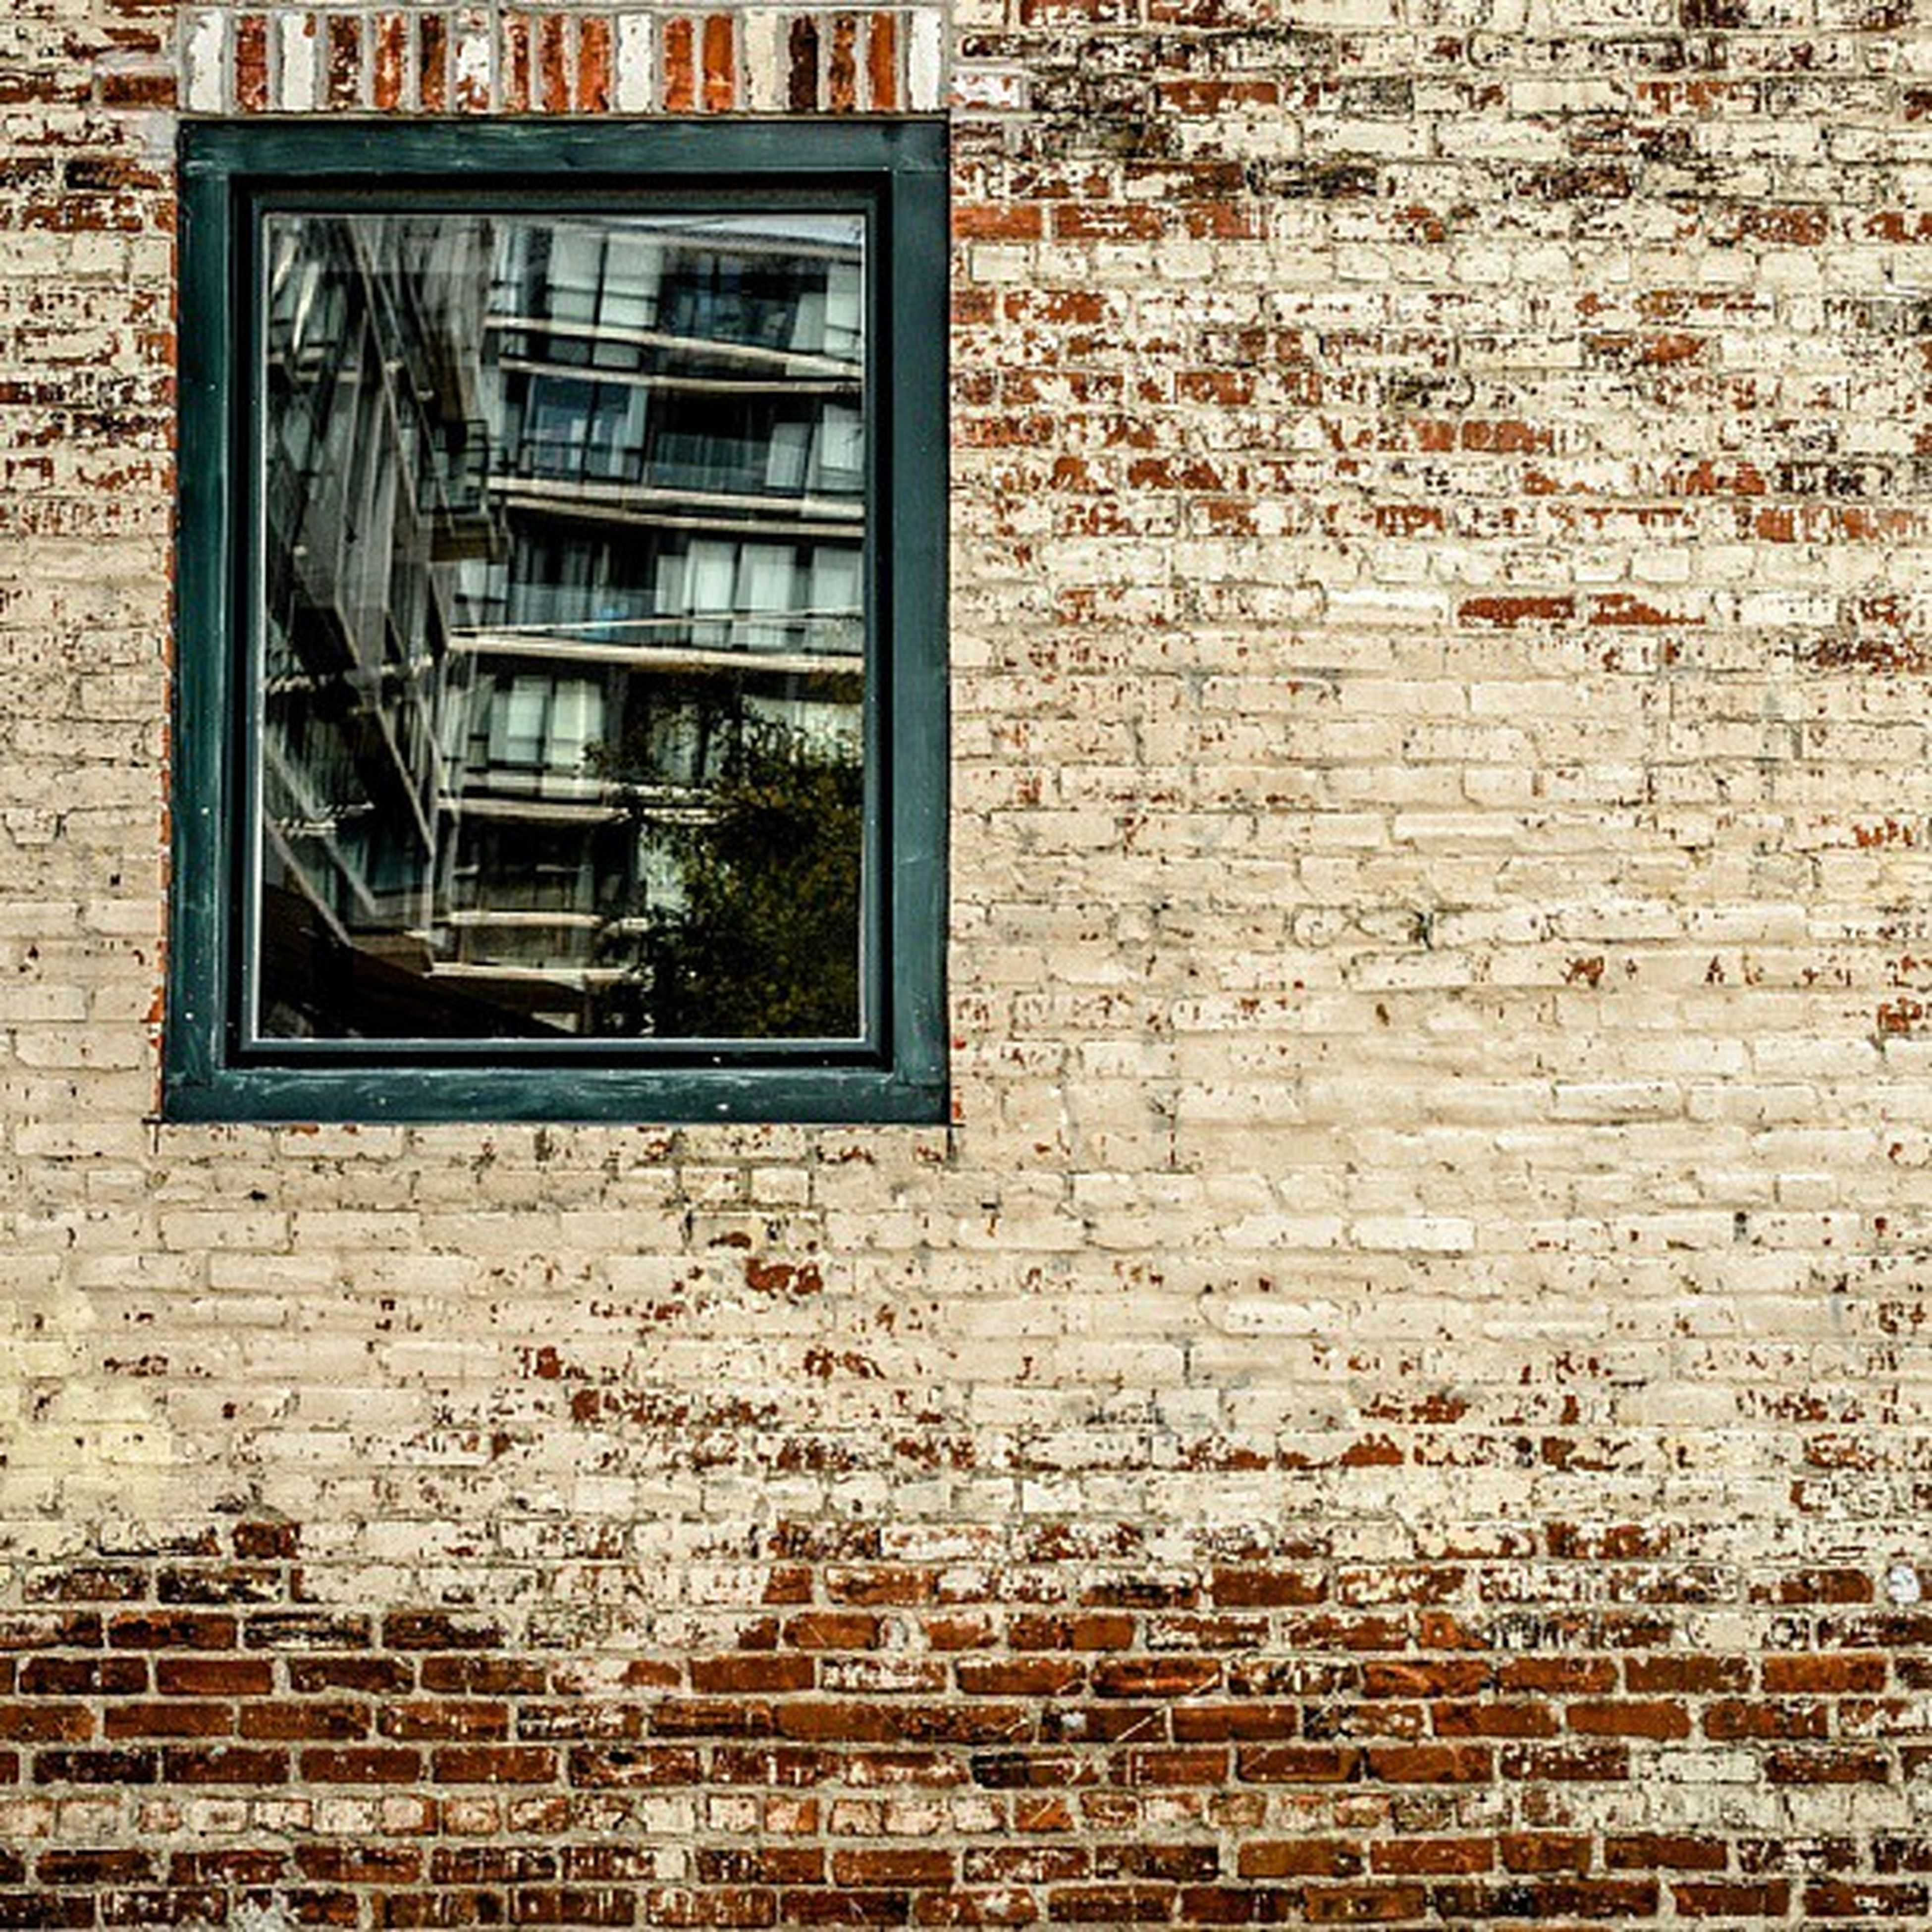 architecture, building exterior, built structure, brick wall, window, old, full frame, wall - building feature, brick, stone wall, weathered, wall, backgrounds, damaged, house, building, textured, pattern, day, abandoned